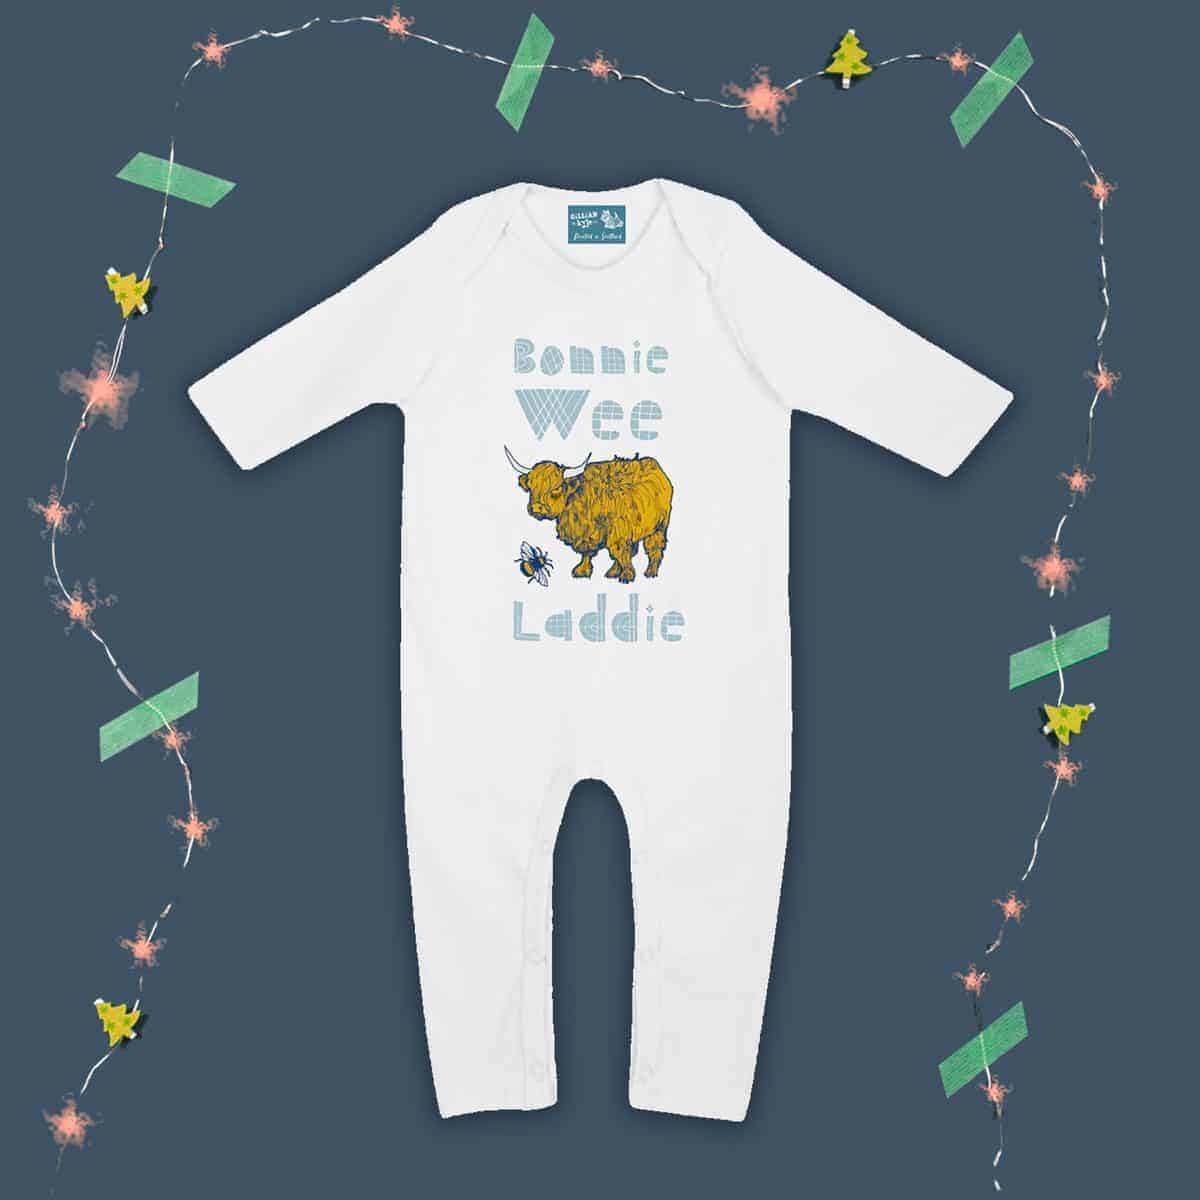 Gillian Kyle, Scottish baby clothing, Scottish baby gift, organic cotton, baby romper sleepsuit, bonnie wee lassie range, scottie dog and butterfly print